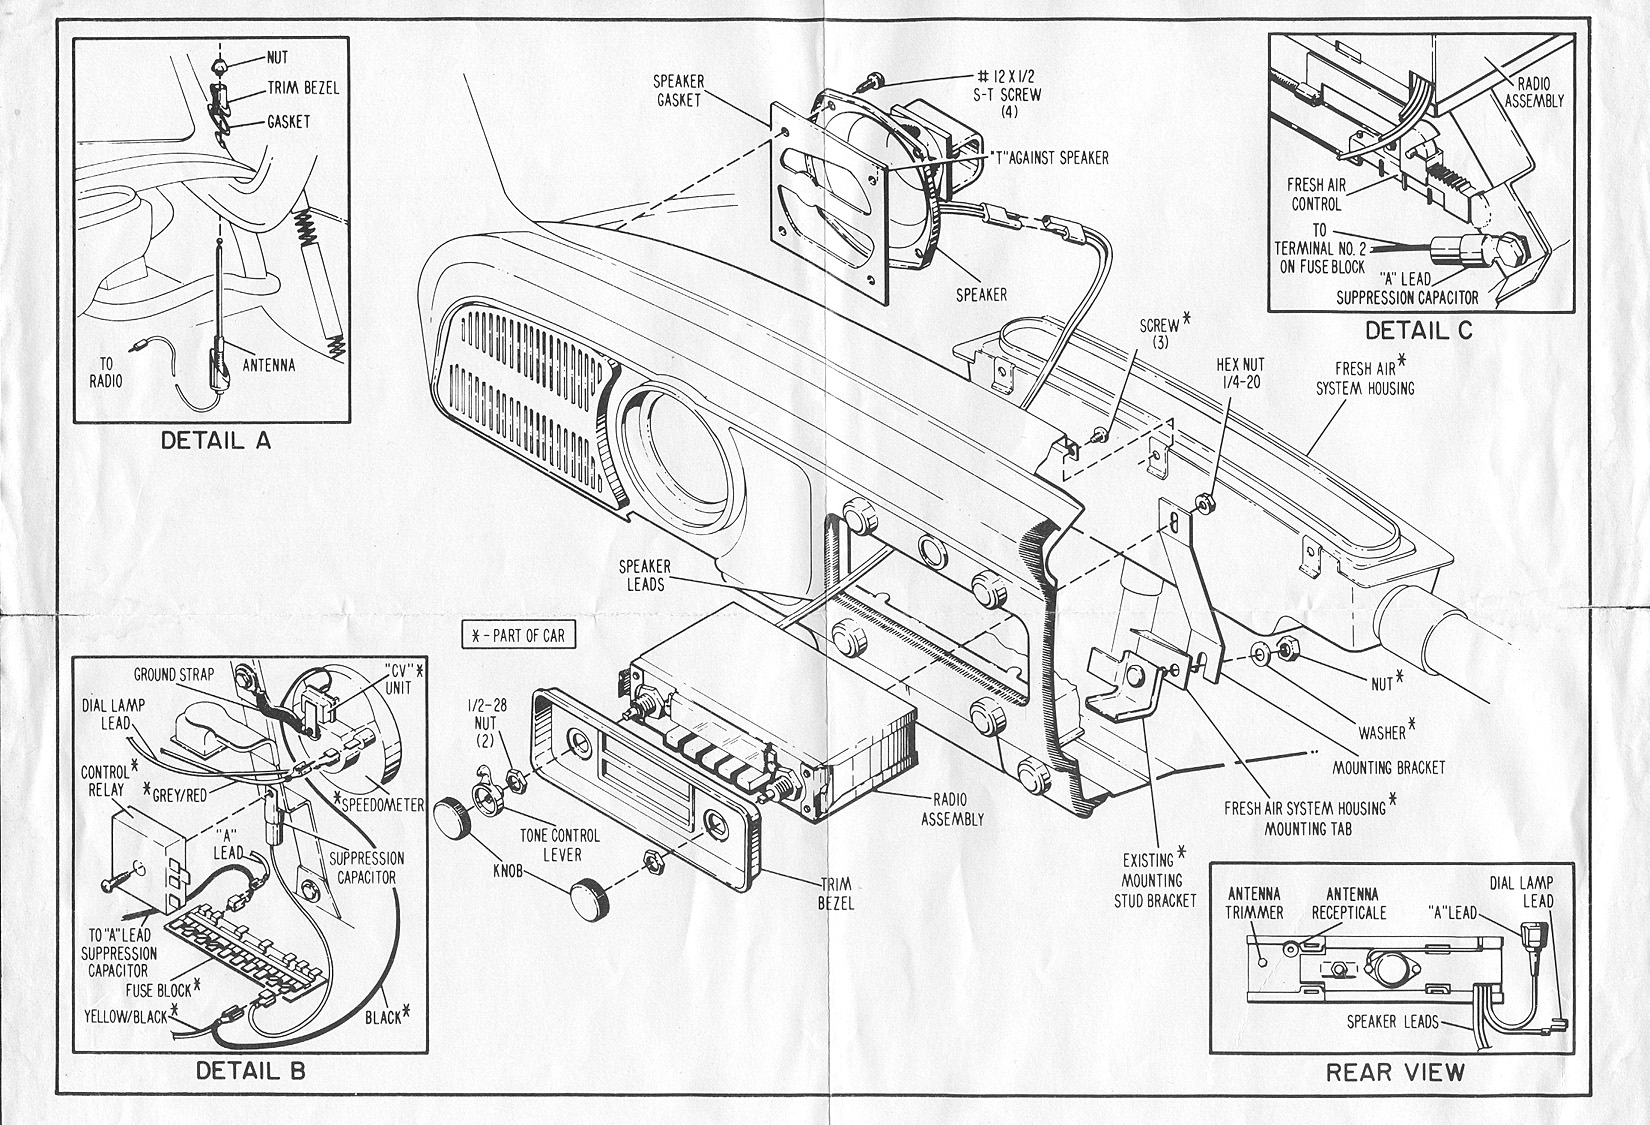 Service manual [1994 Volkswagen Jetta Engine Timing Chain